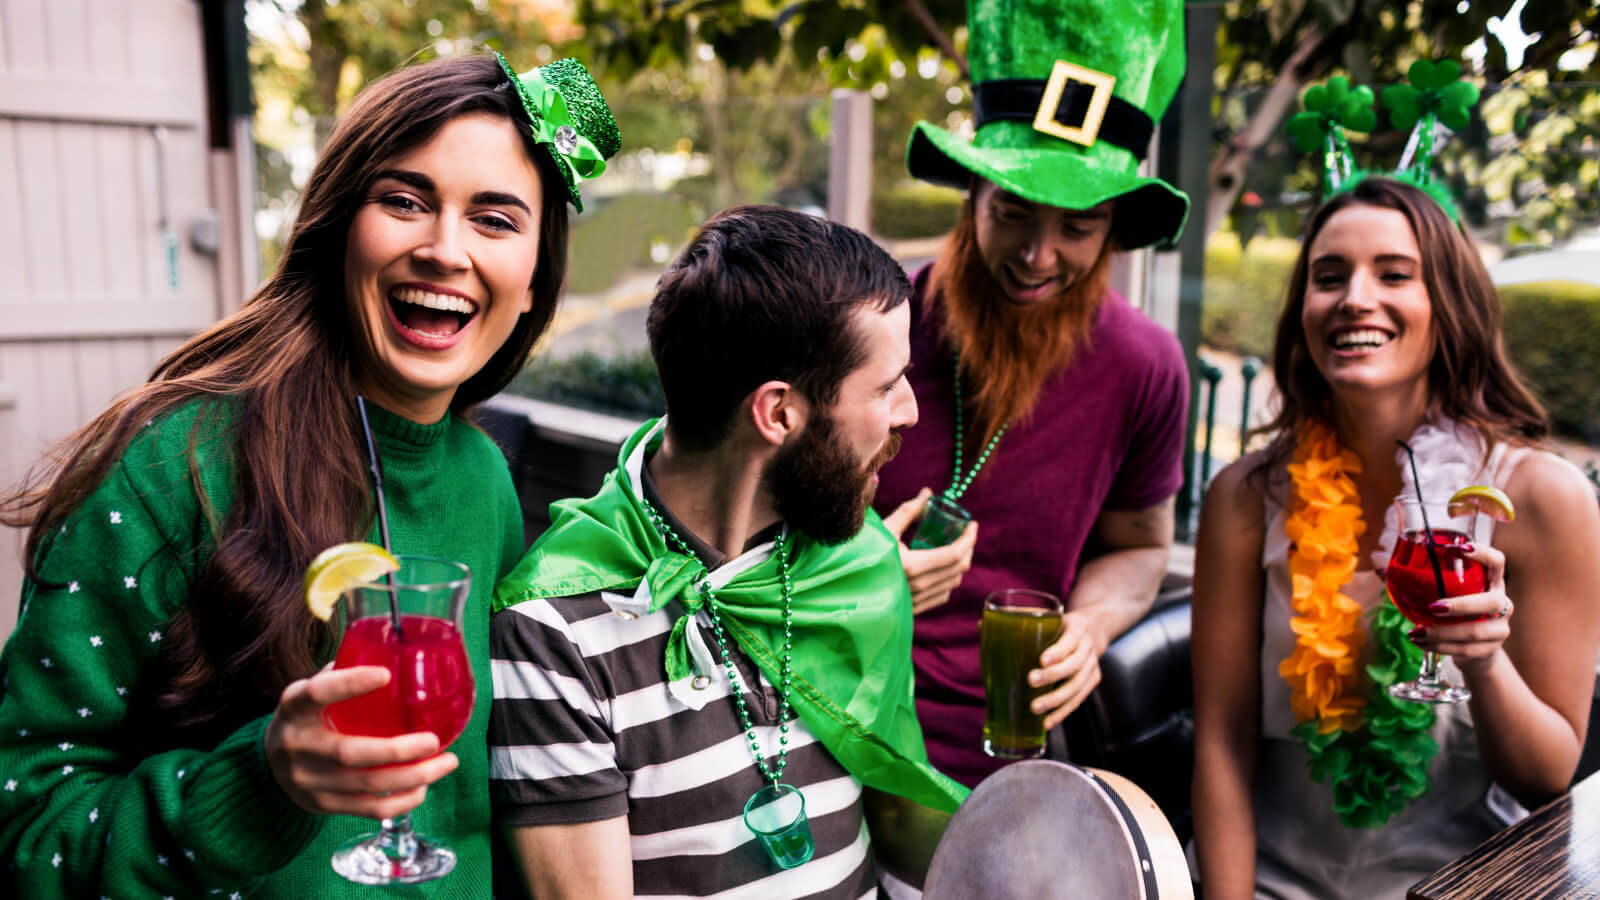 8 Top Cities To Celebrate St. Patrick's Day